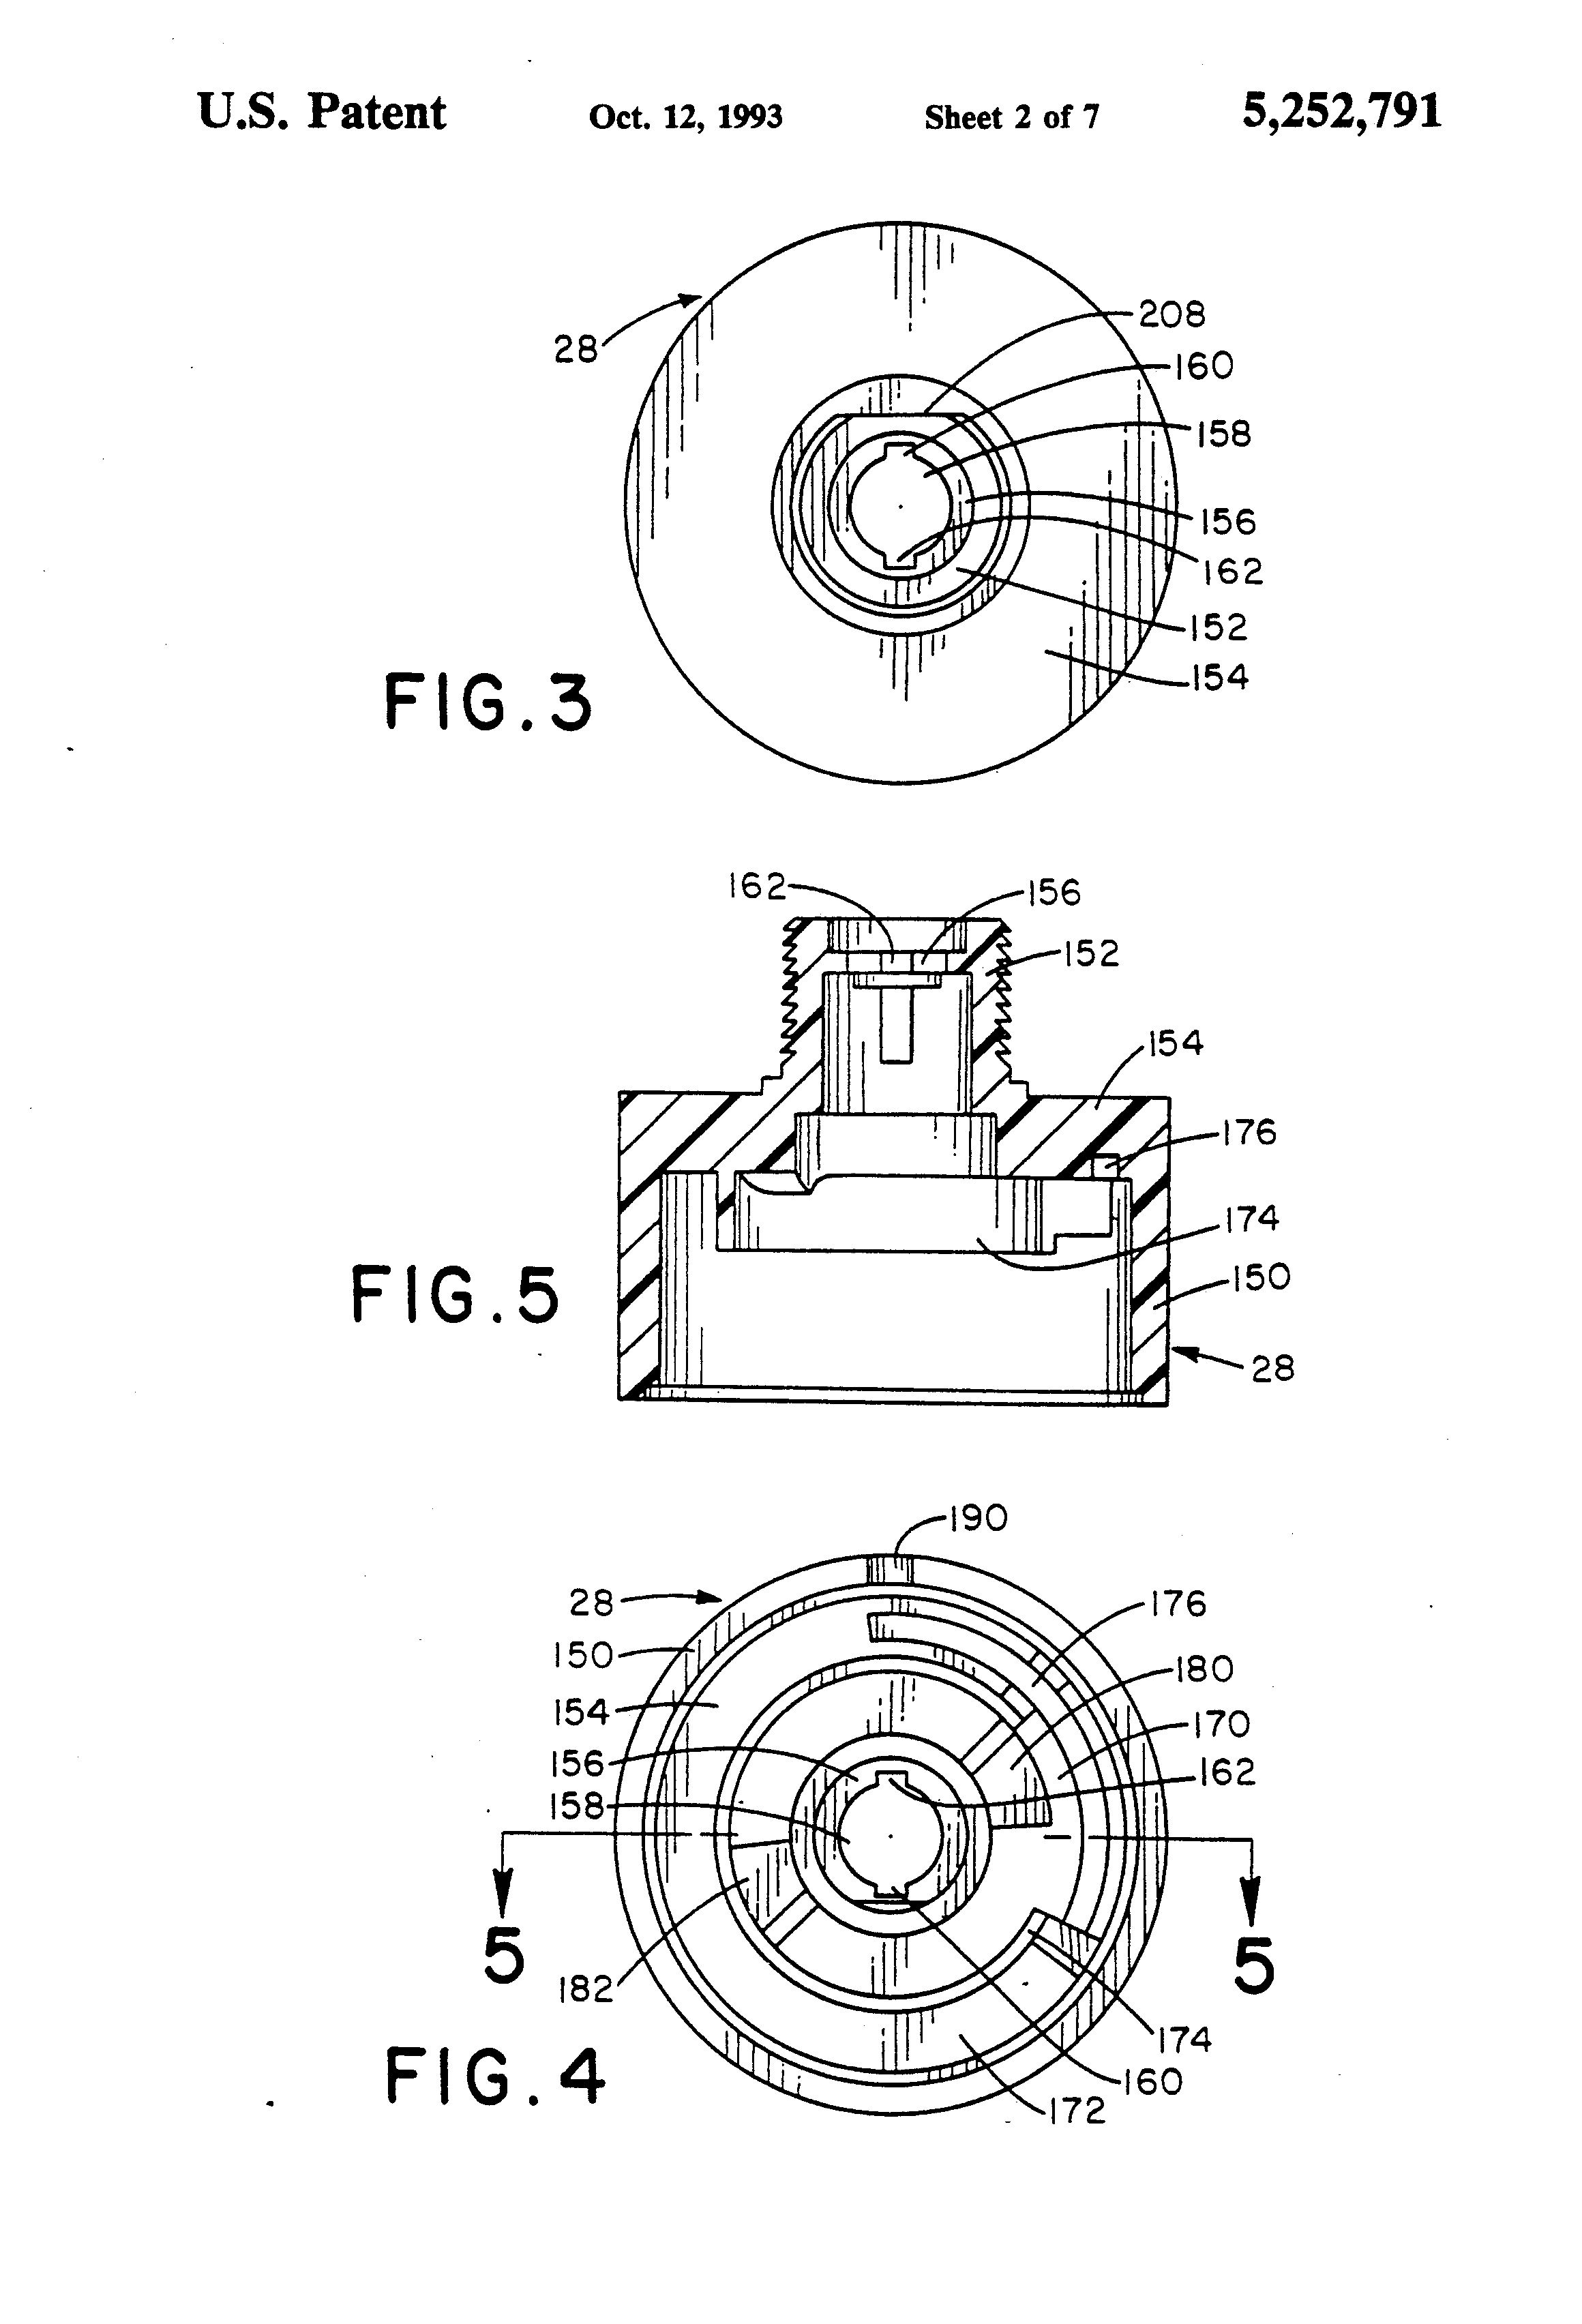 indak switch wiring diagram patent us5252791 ignition    switch    google patents  patent us5252791 ignition    switch    google patents